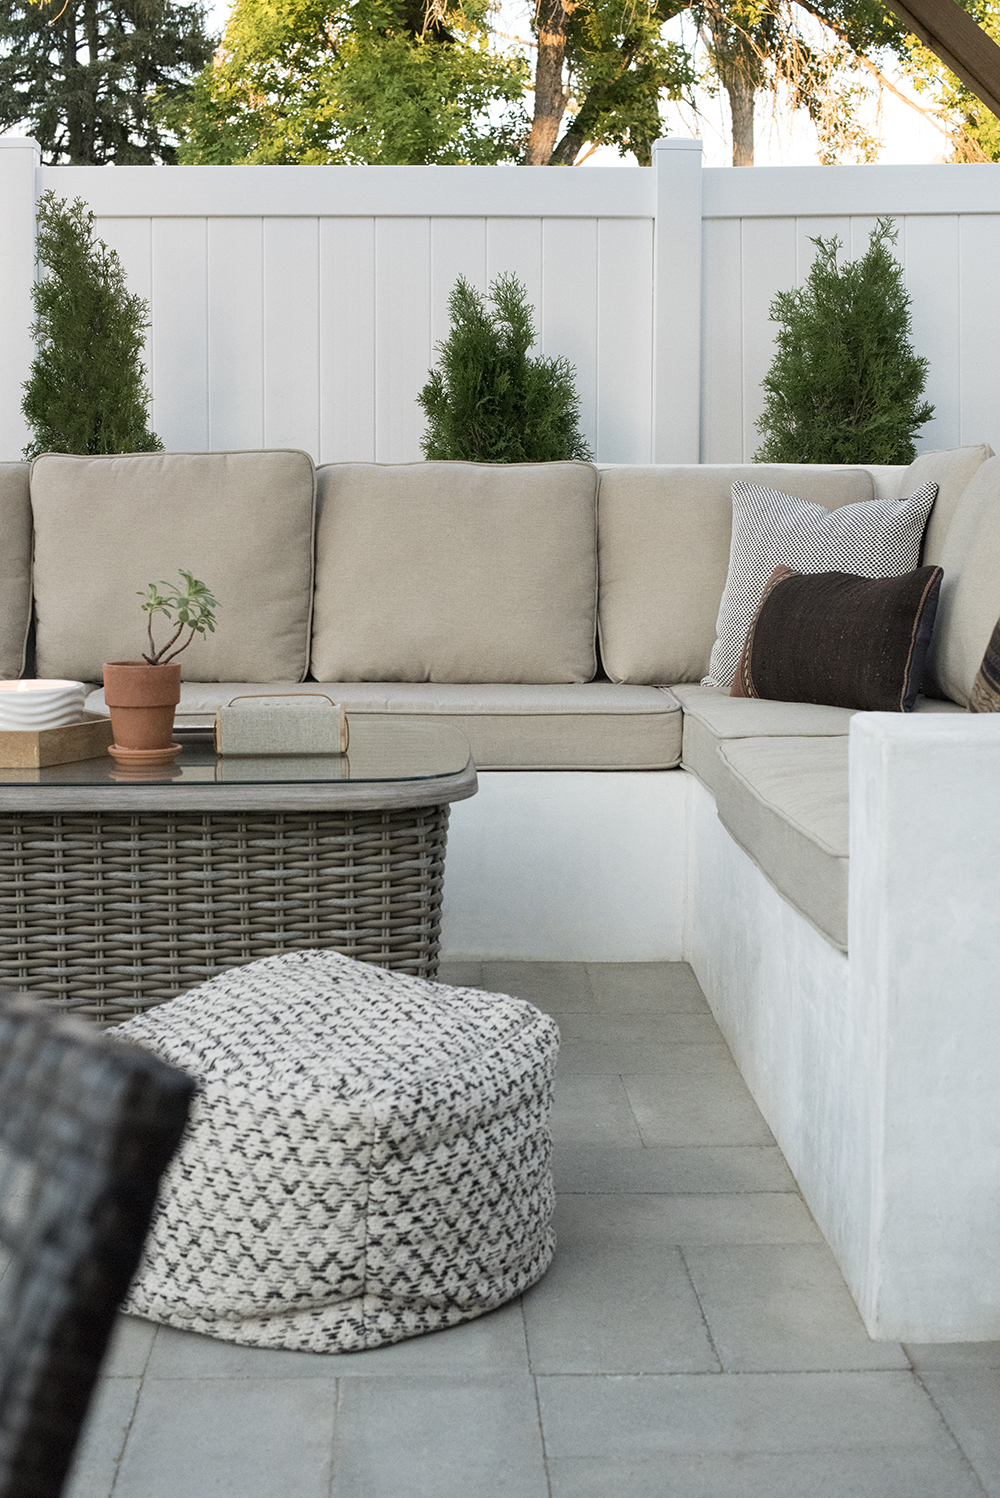 Custom Outdoor Seating DIY Room for Tuesday Blog